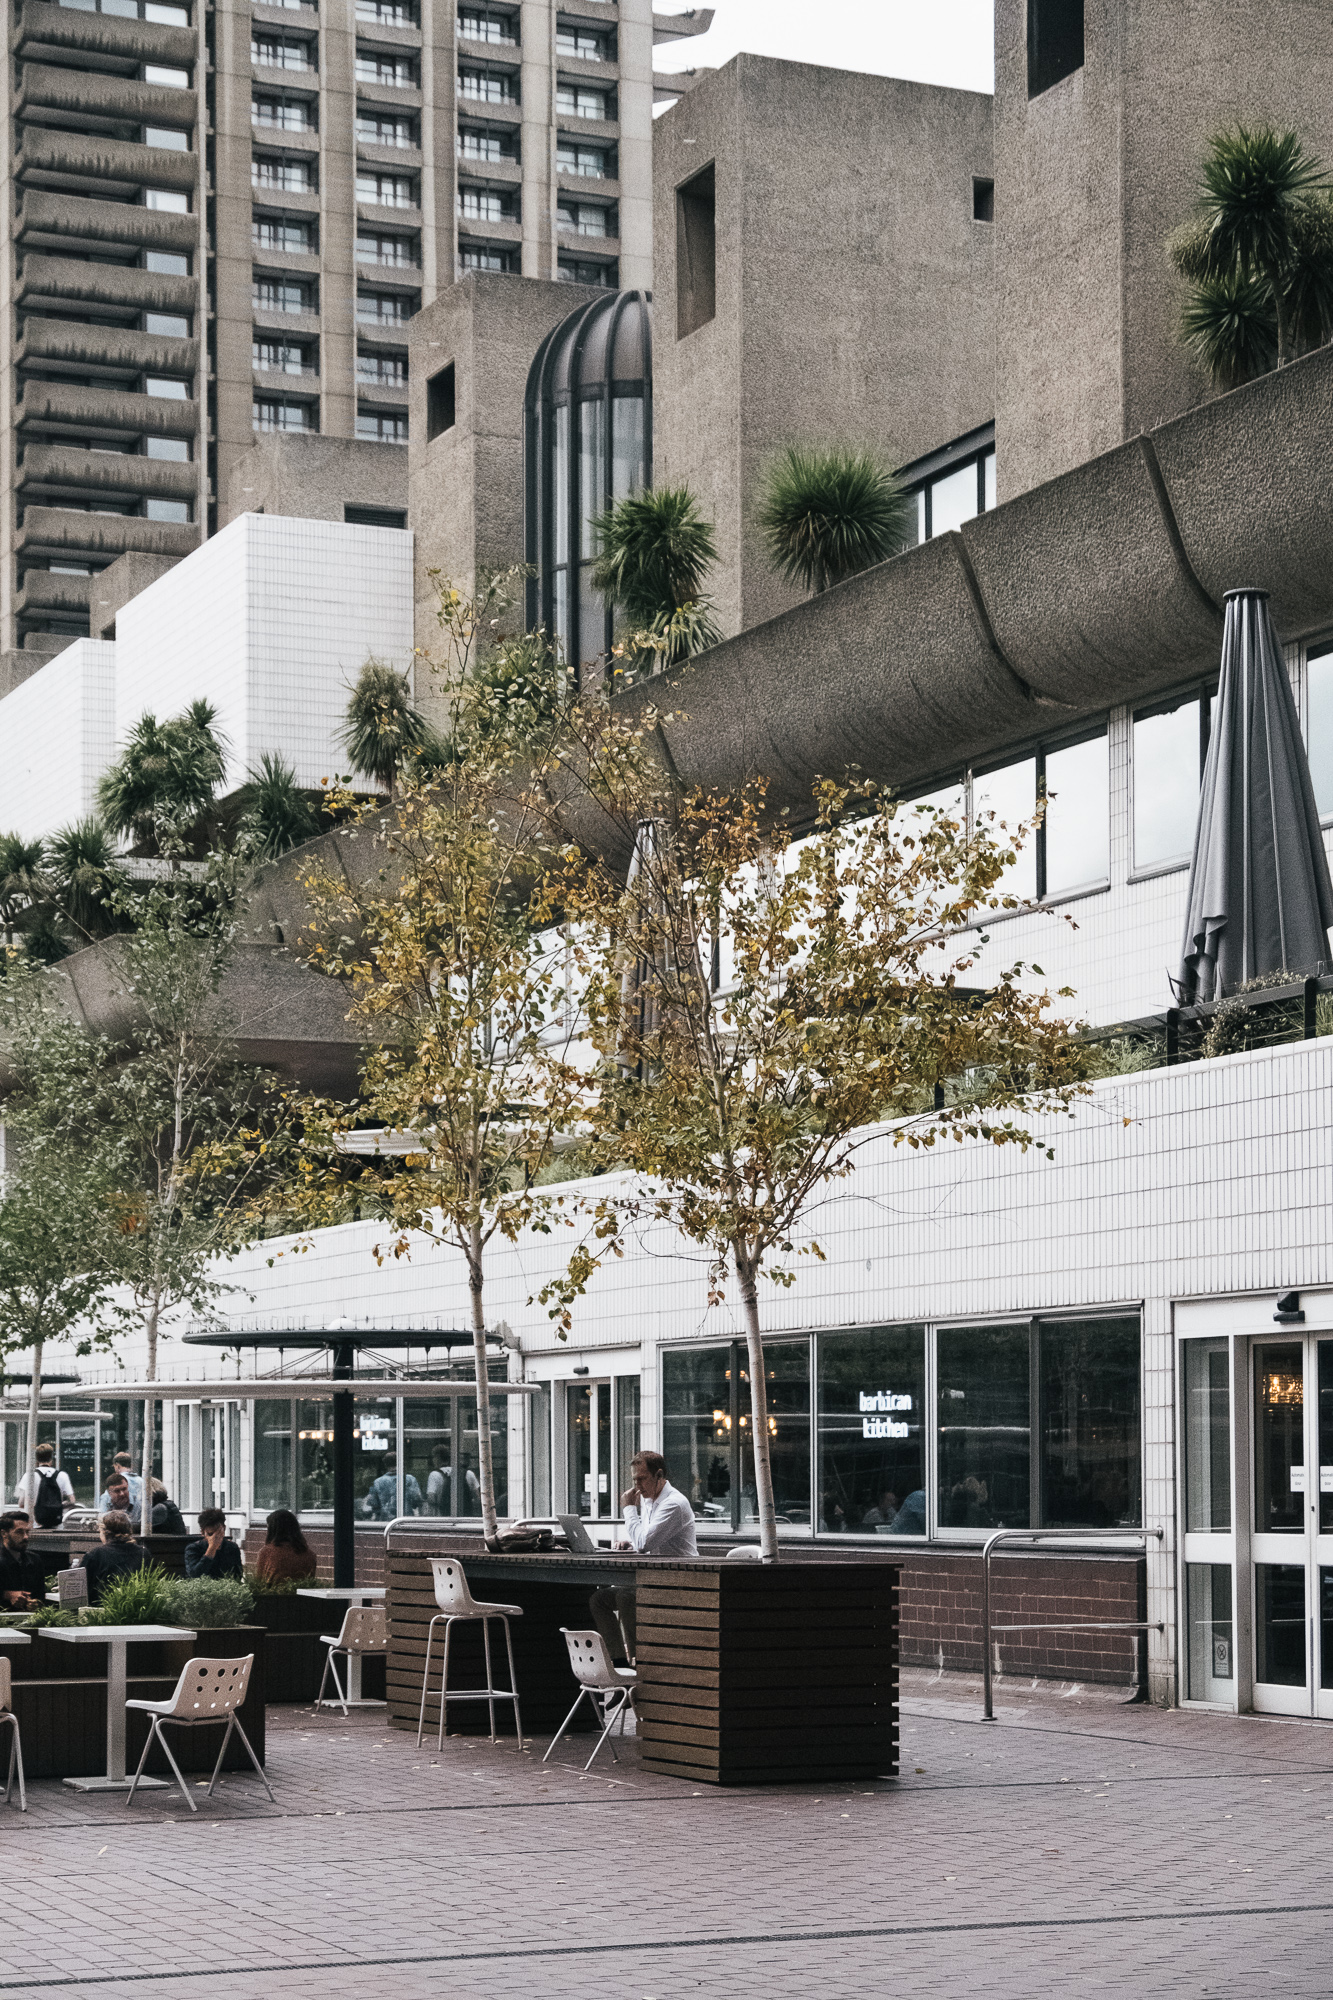 Barbican kitchen takes care of the coffee and lunch cravings